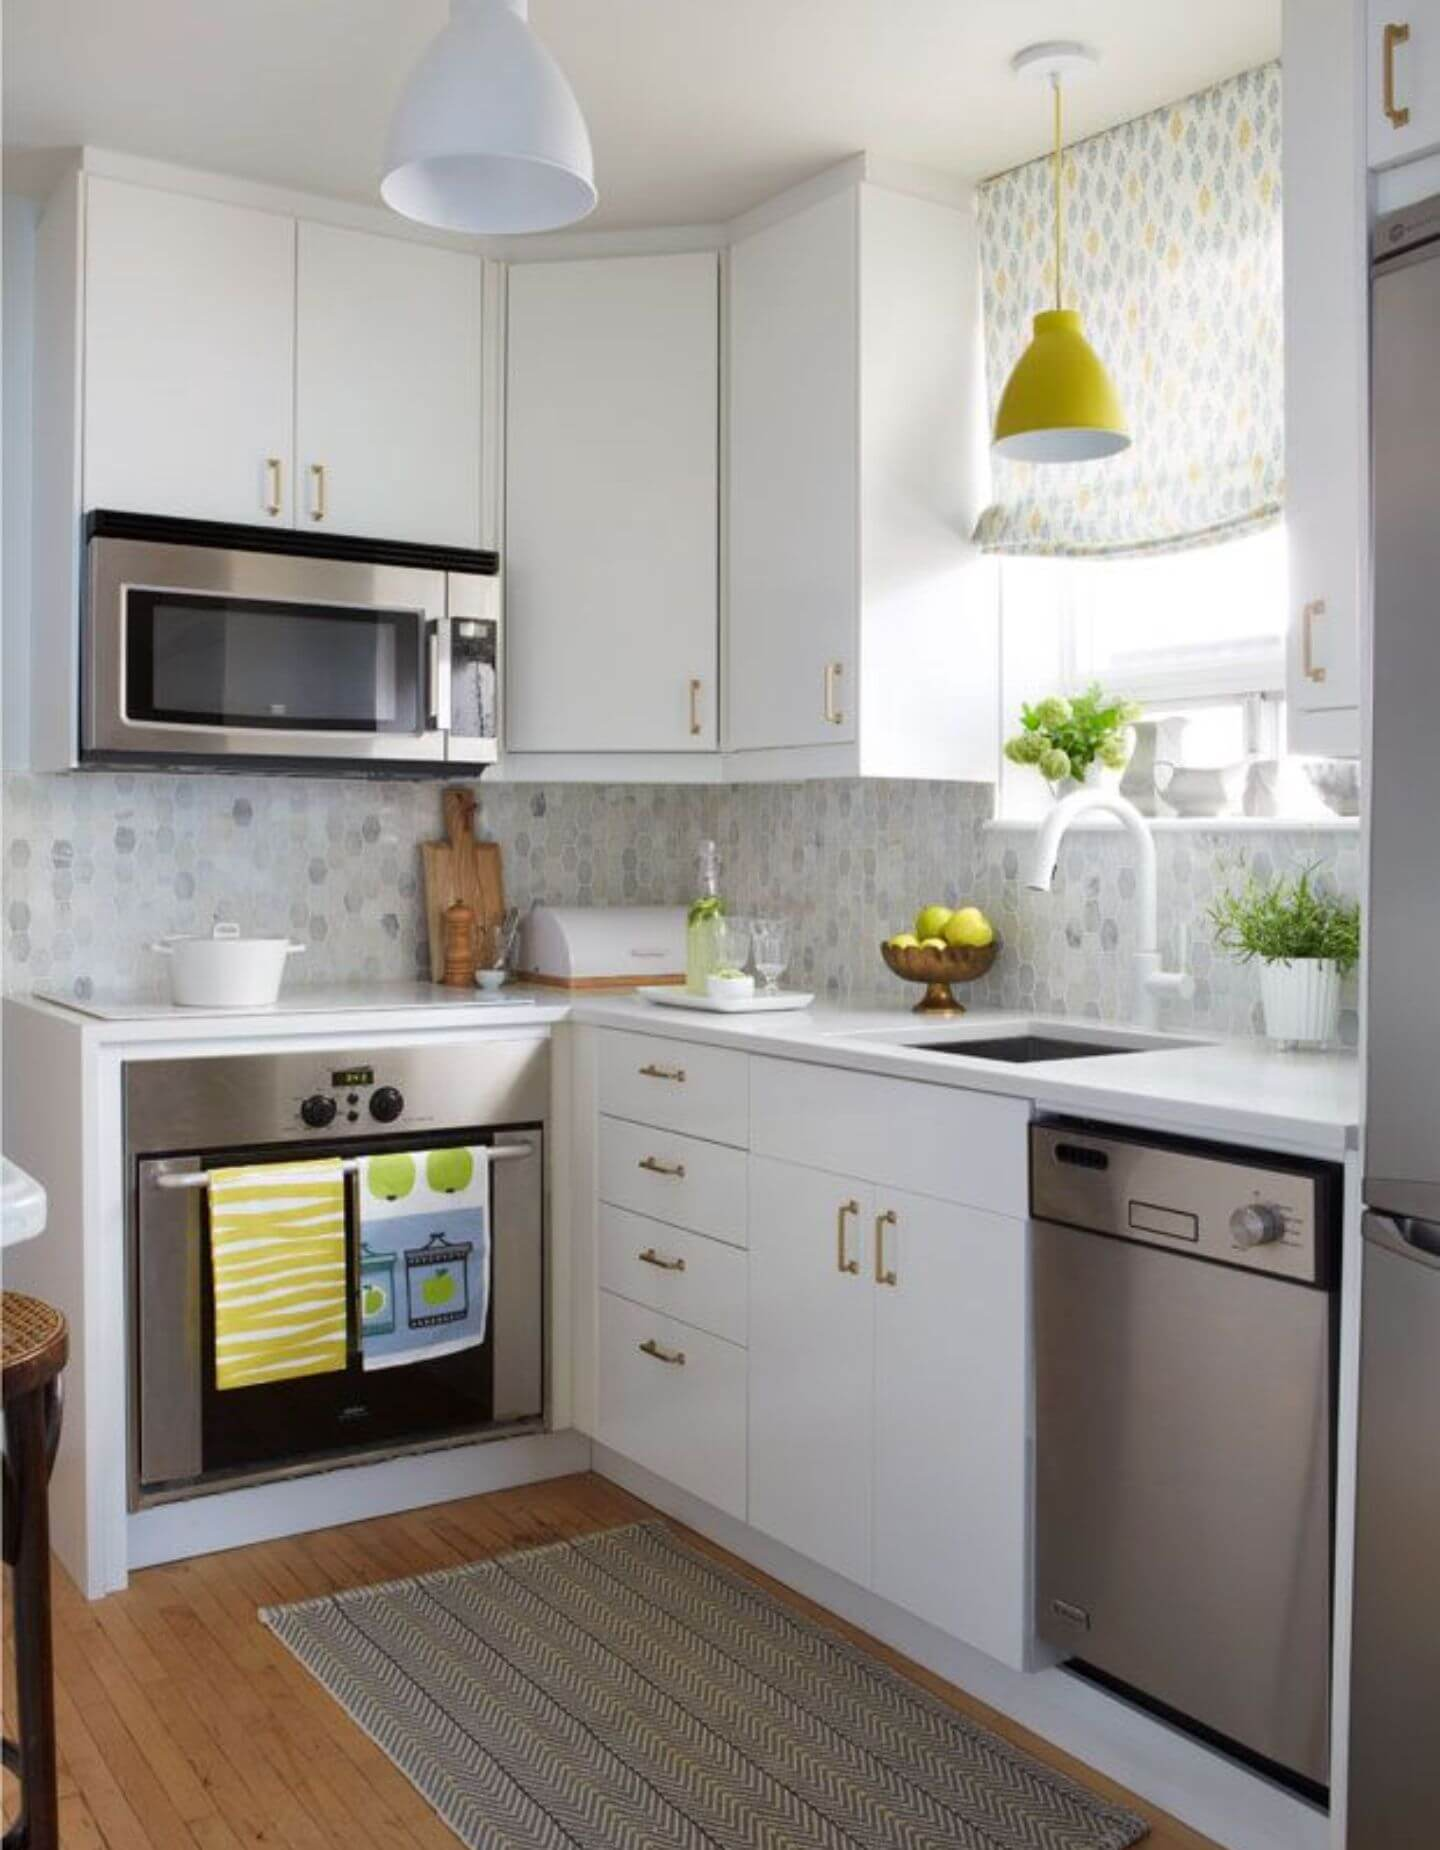 SIMPLE WHITE L SHAPED KITCHEN DESIGNS FOR SMALL KITCHENS